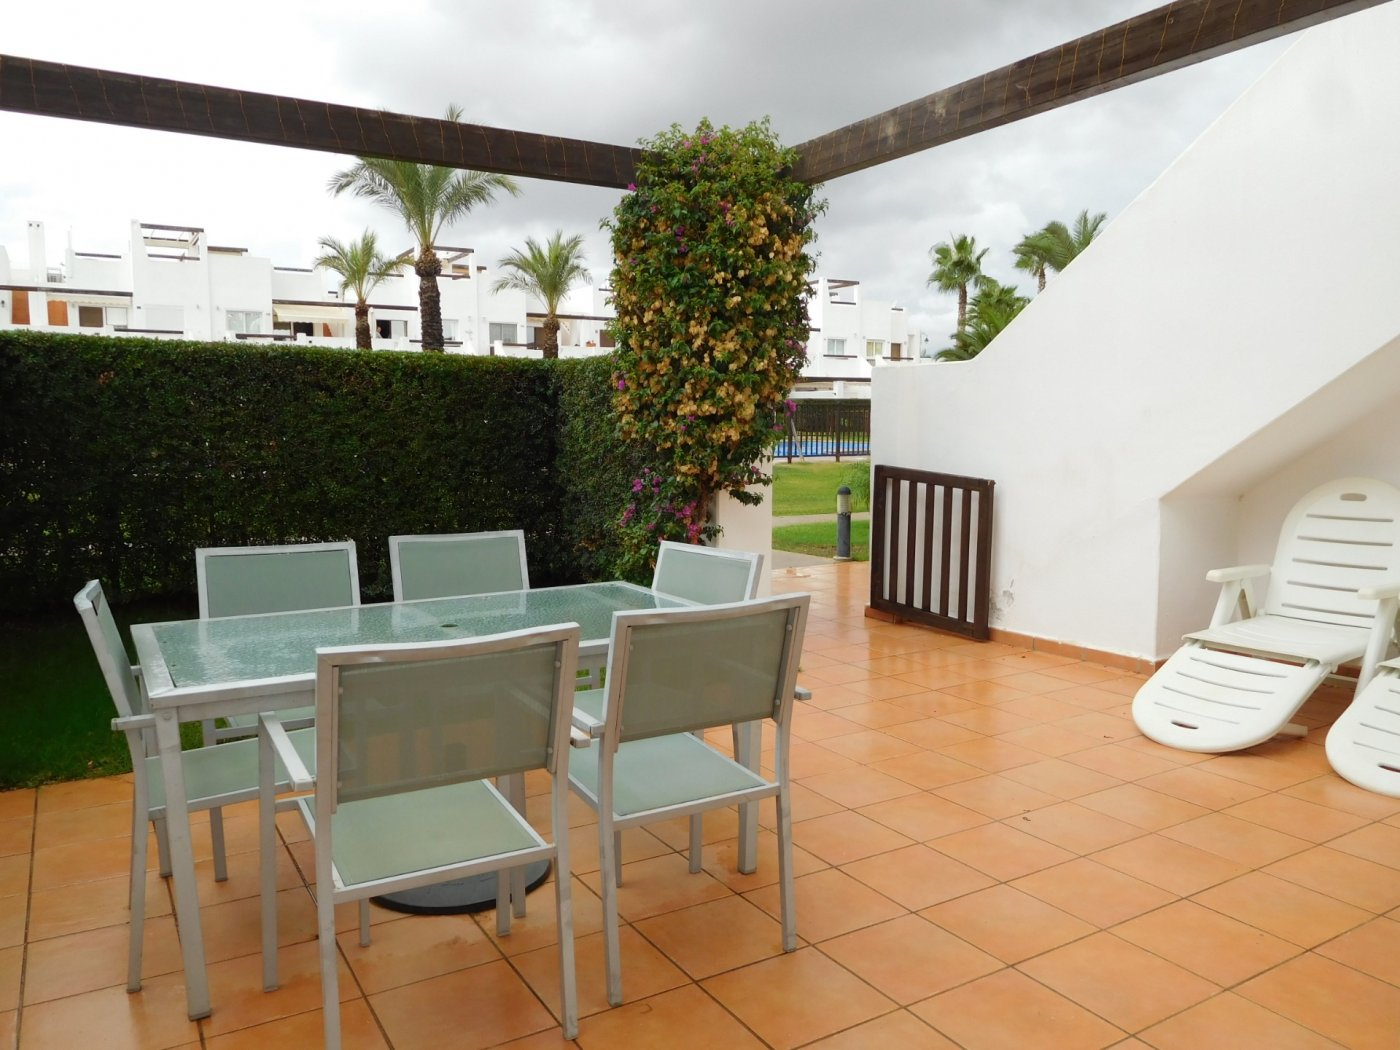 Gallery Image 17 of Flat For rent in Condado De Alhama, Alhama De Murcia With Pool